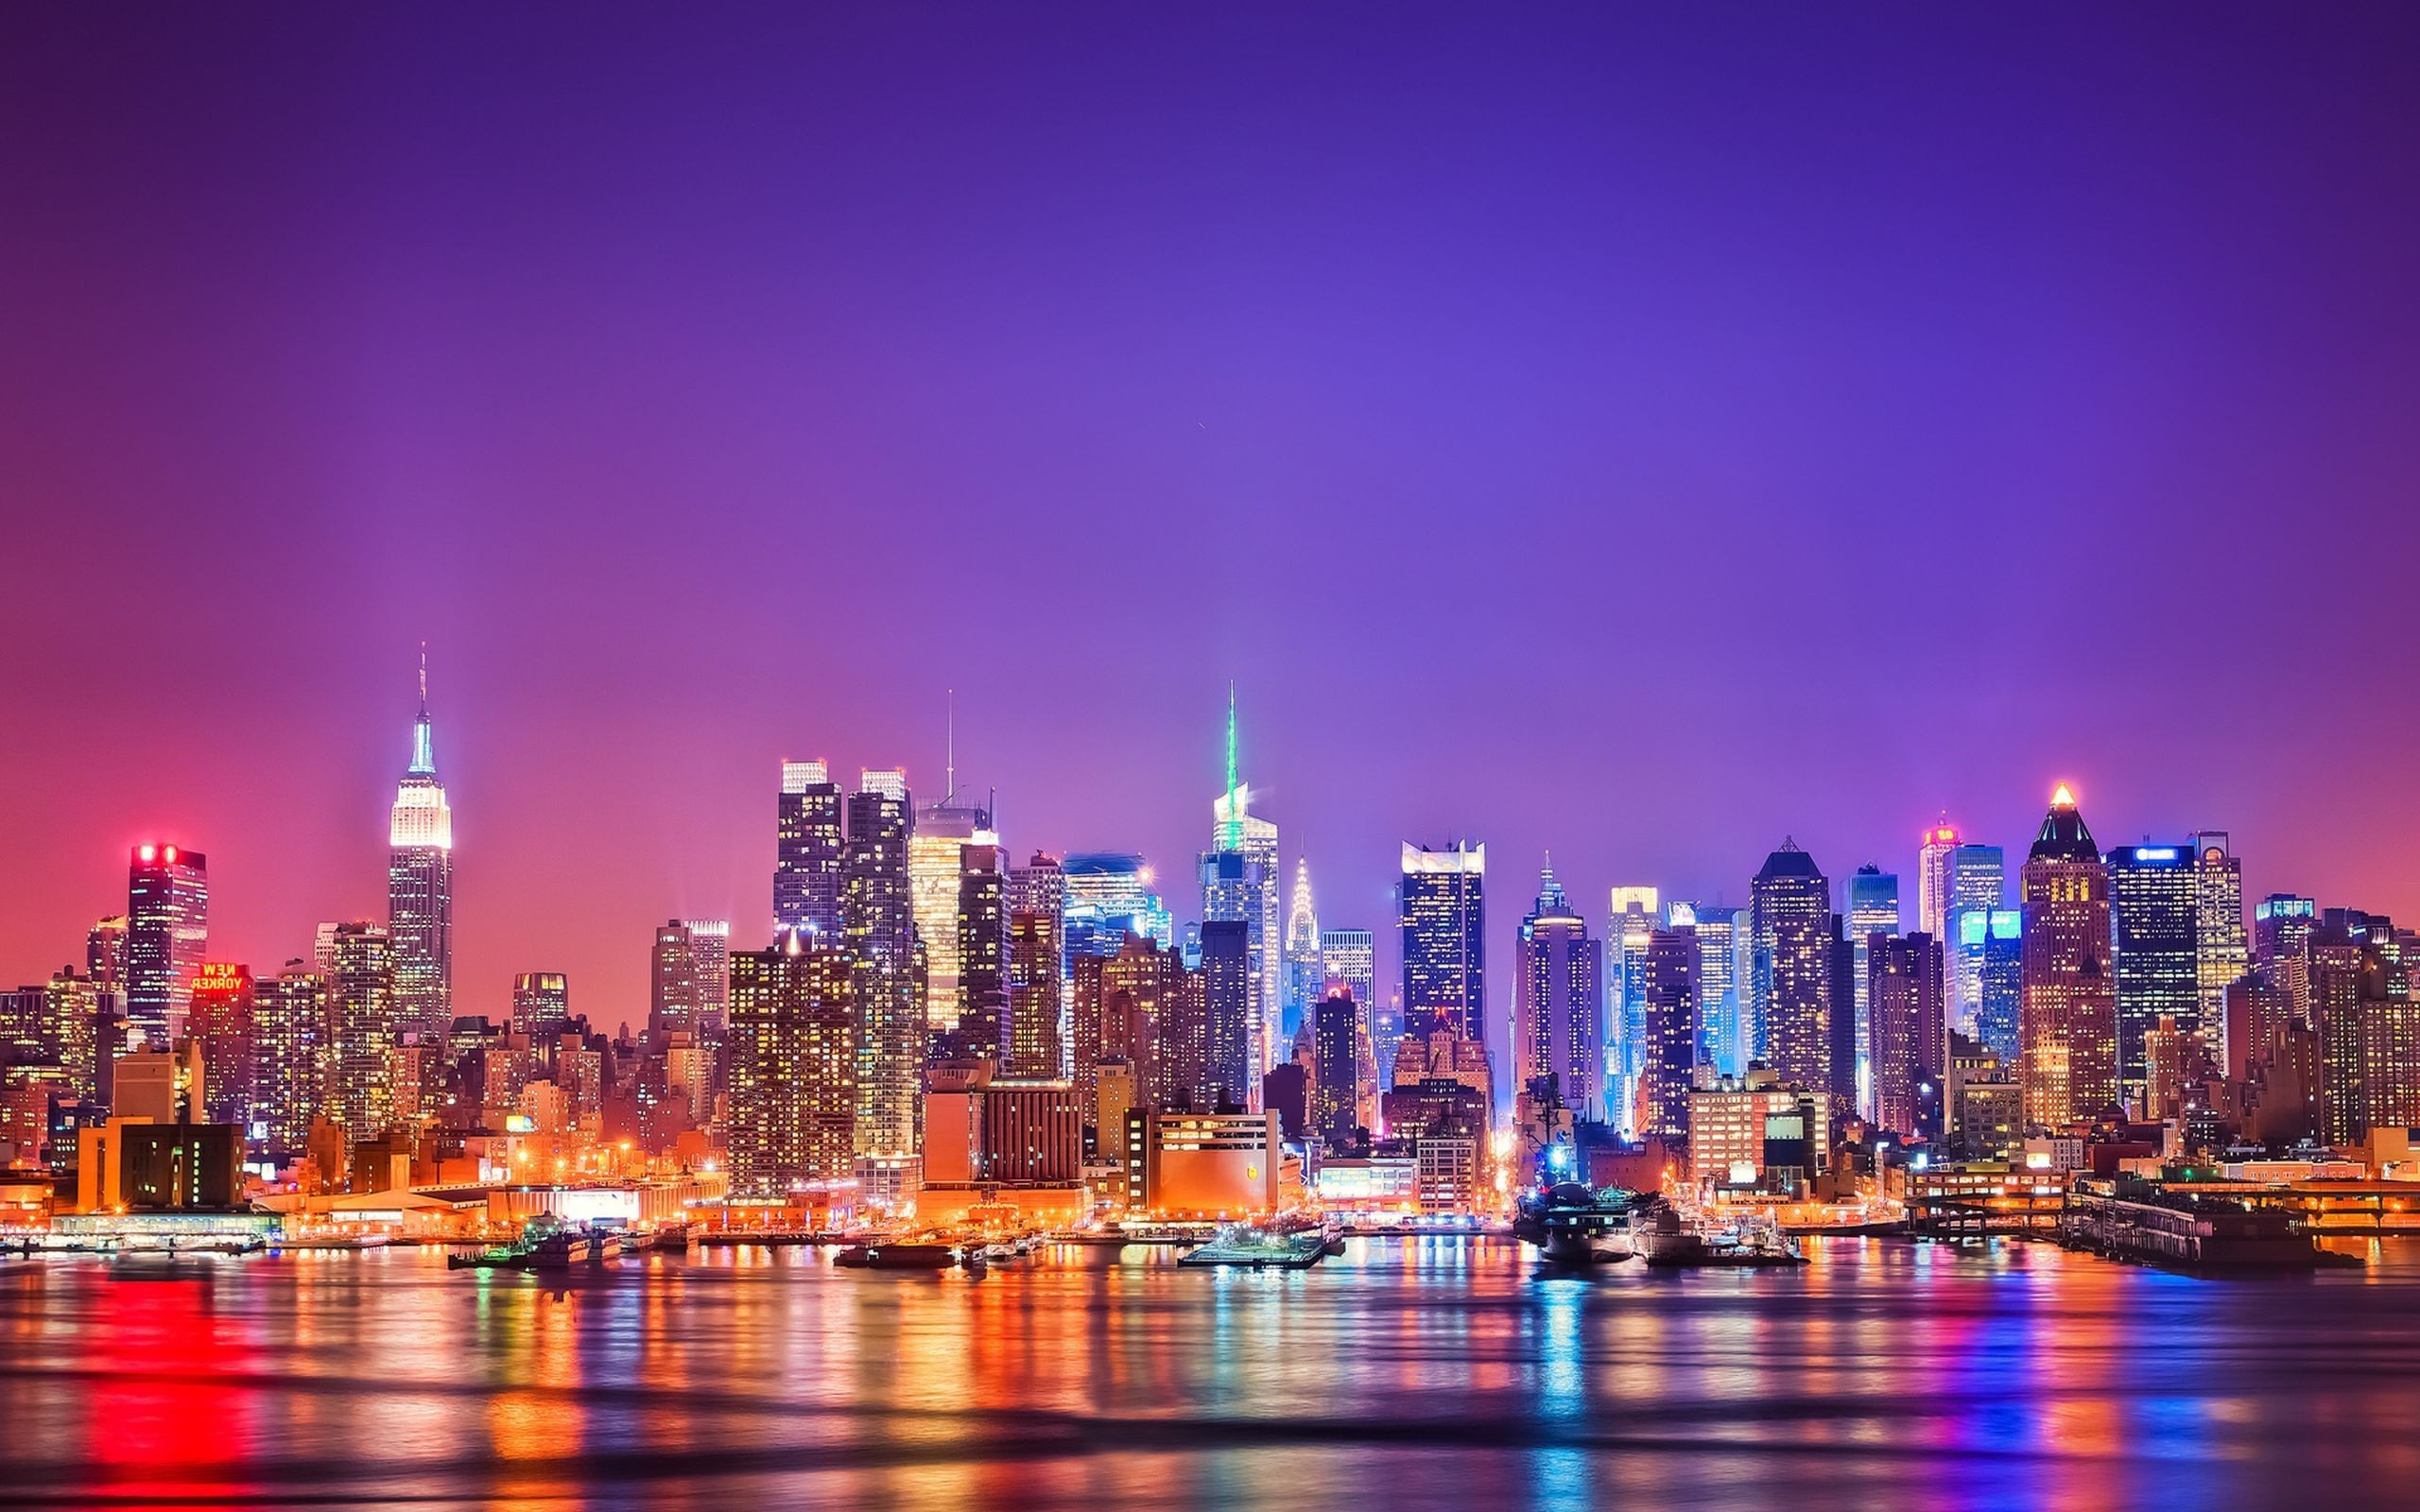 Free Download New York Skyline At Night Wallpaper 2560x1600 For